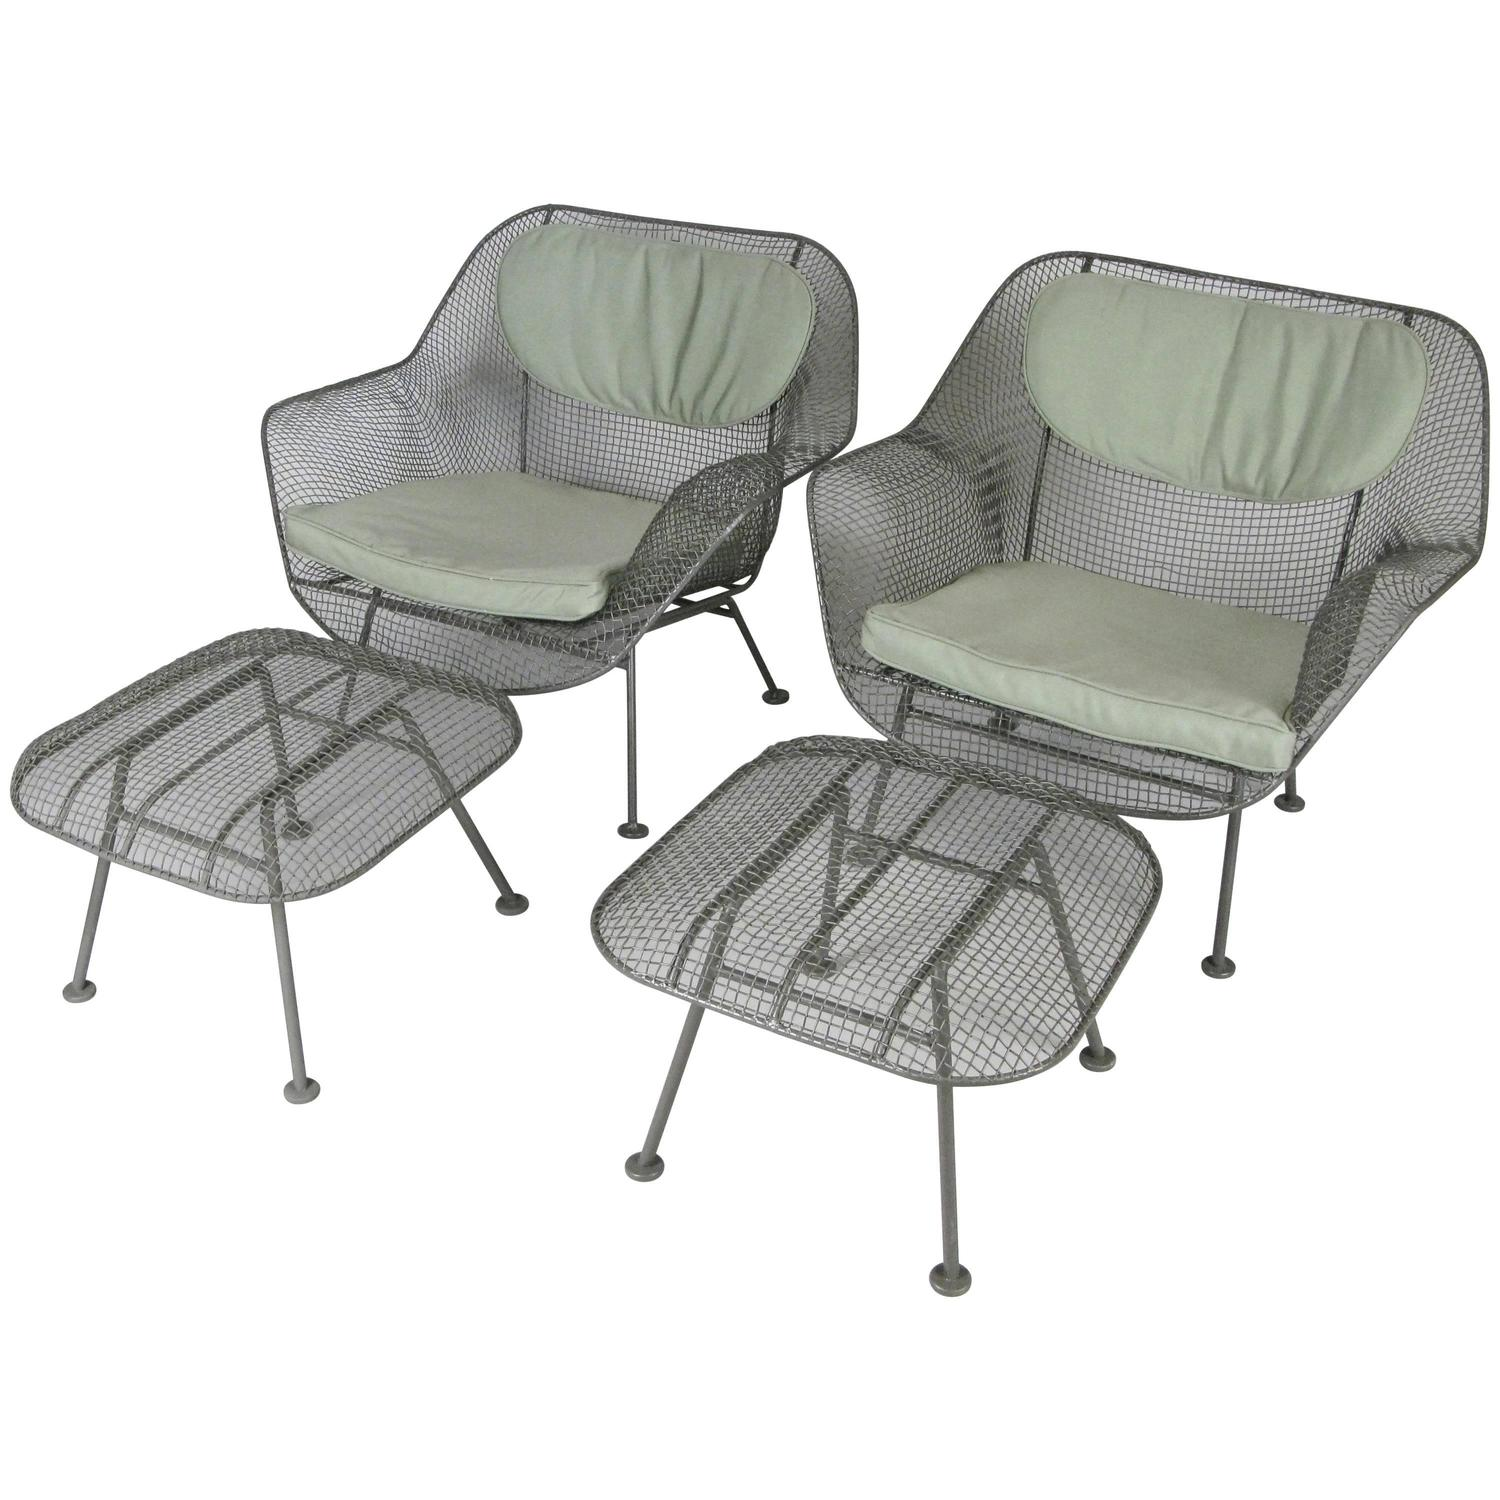 Pair of Sculptura Lounge Chairs and Ottomans by Russell Woodard at